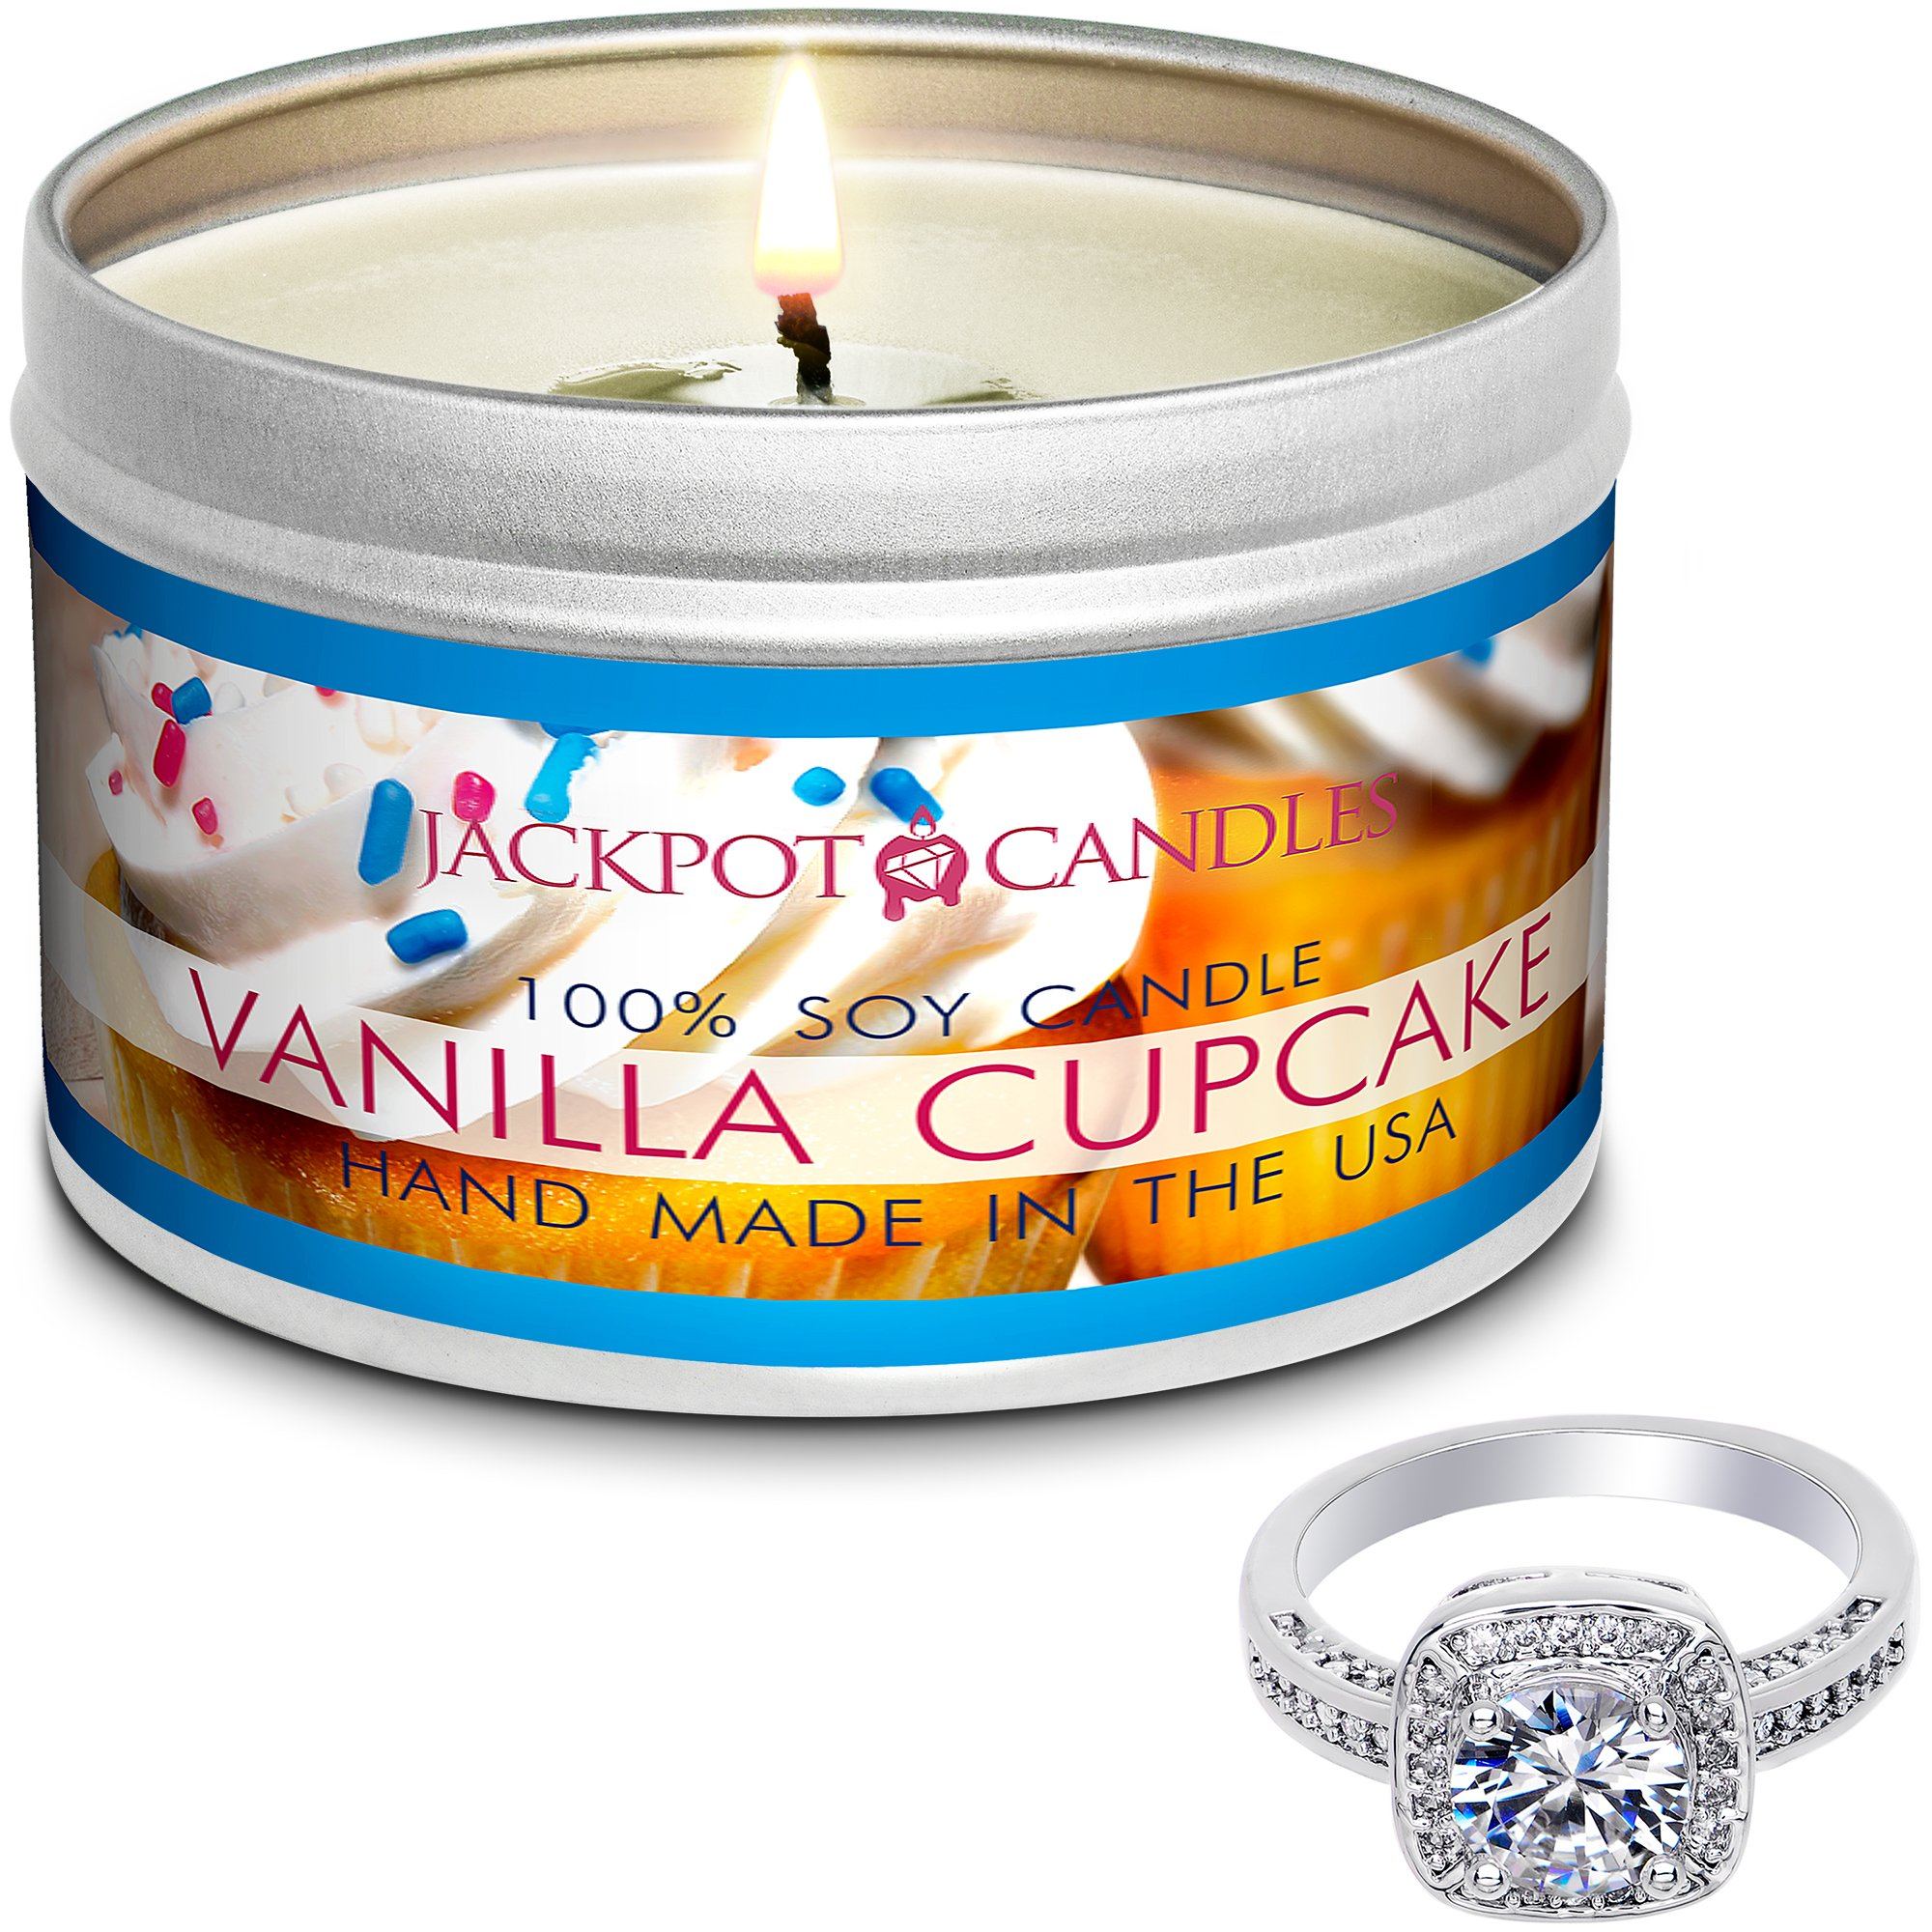 Jackpot Candles Surprise Size Ring Vanilla Cupcake Jewelry Candle Travel Tin by Jackpot Candles (Image #1)